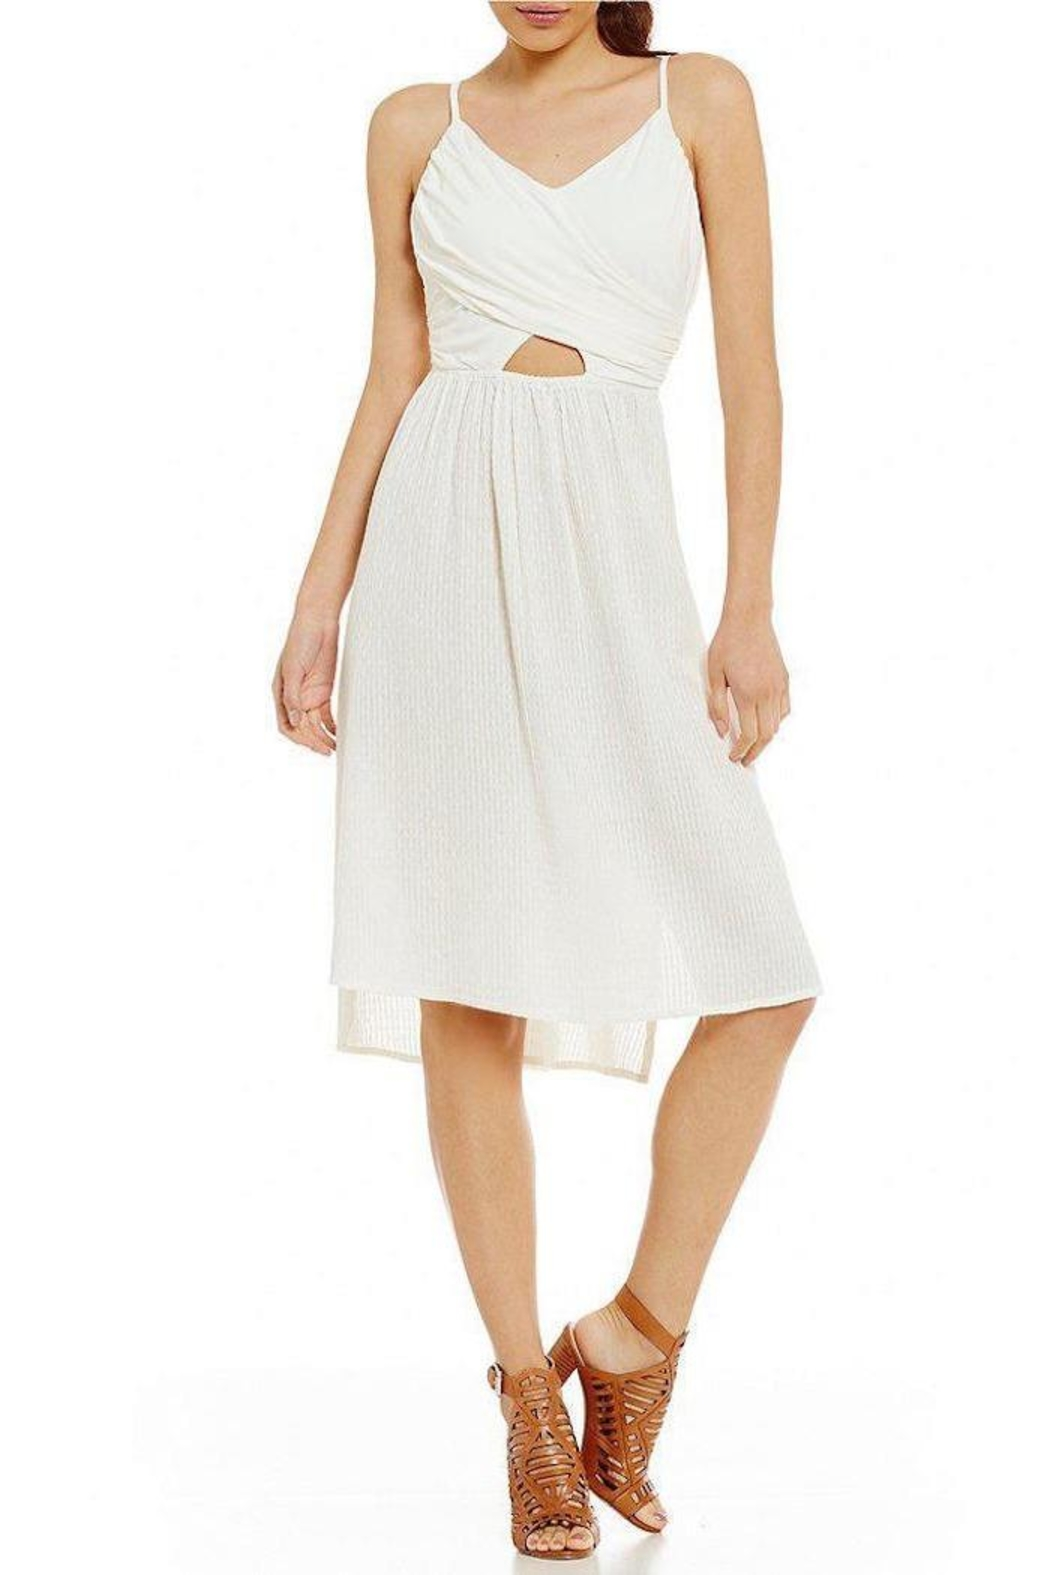 Roxy Resolutions White Dress - Front Full Image